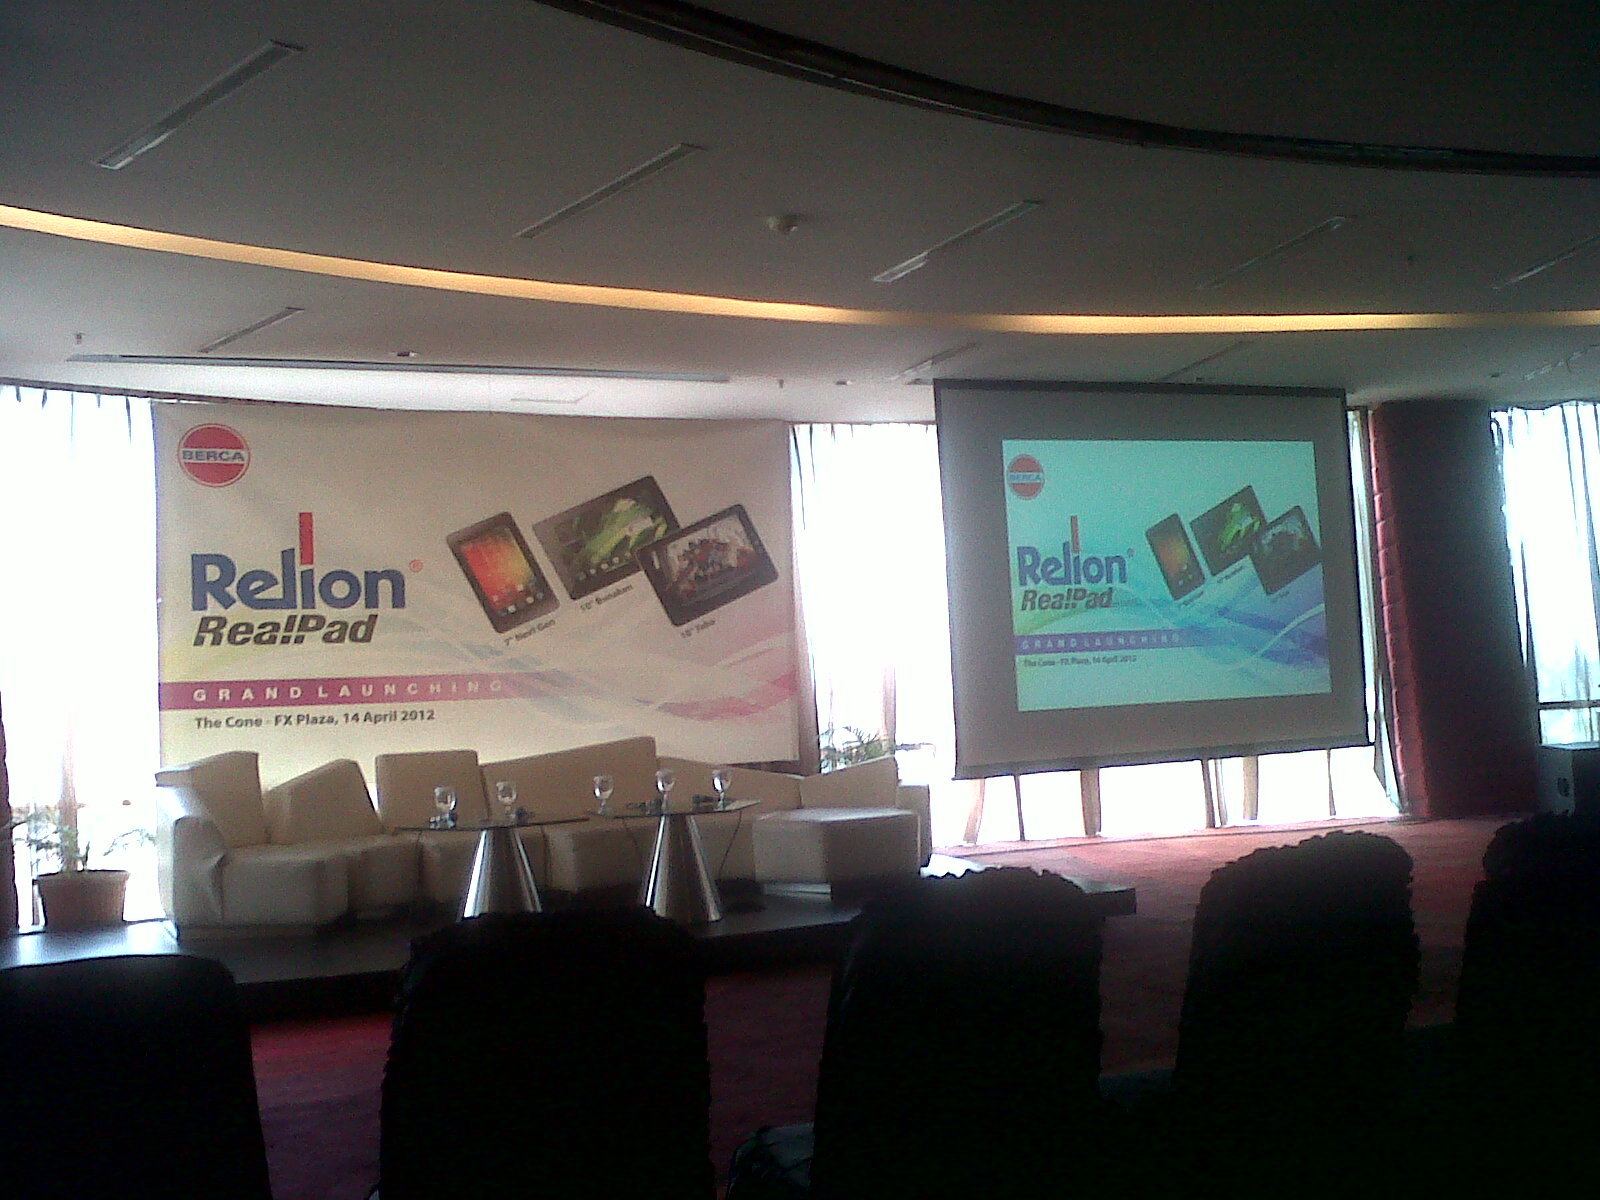 Review Acara Grand Launching Relion RealPad Bunaken